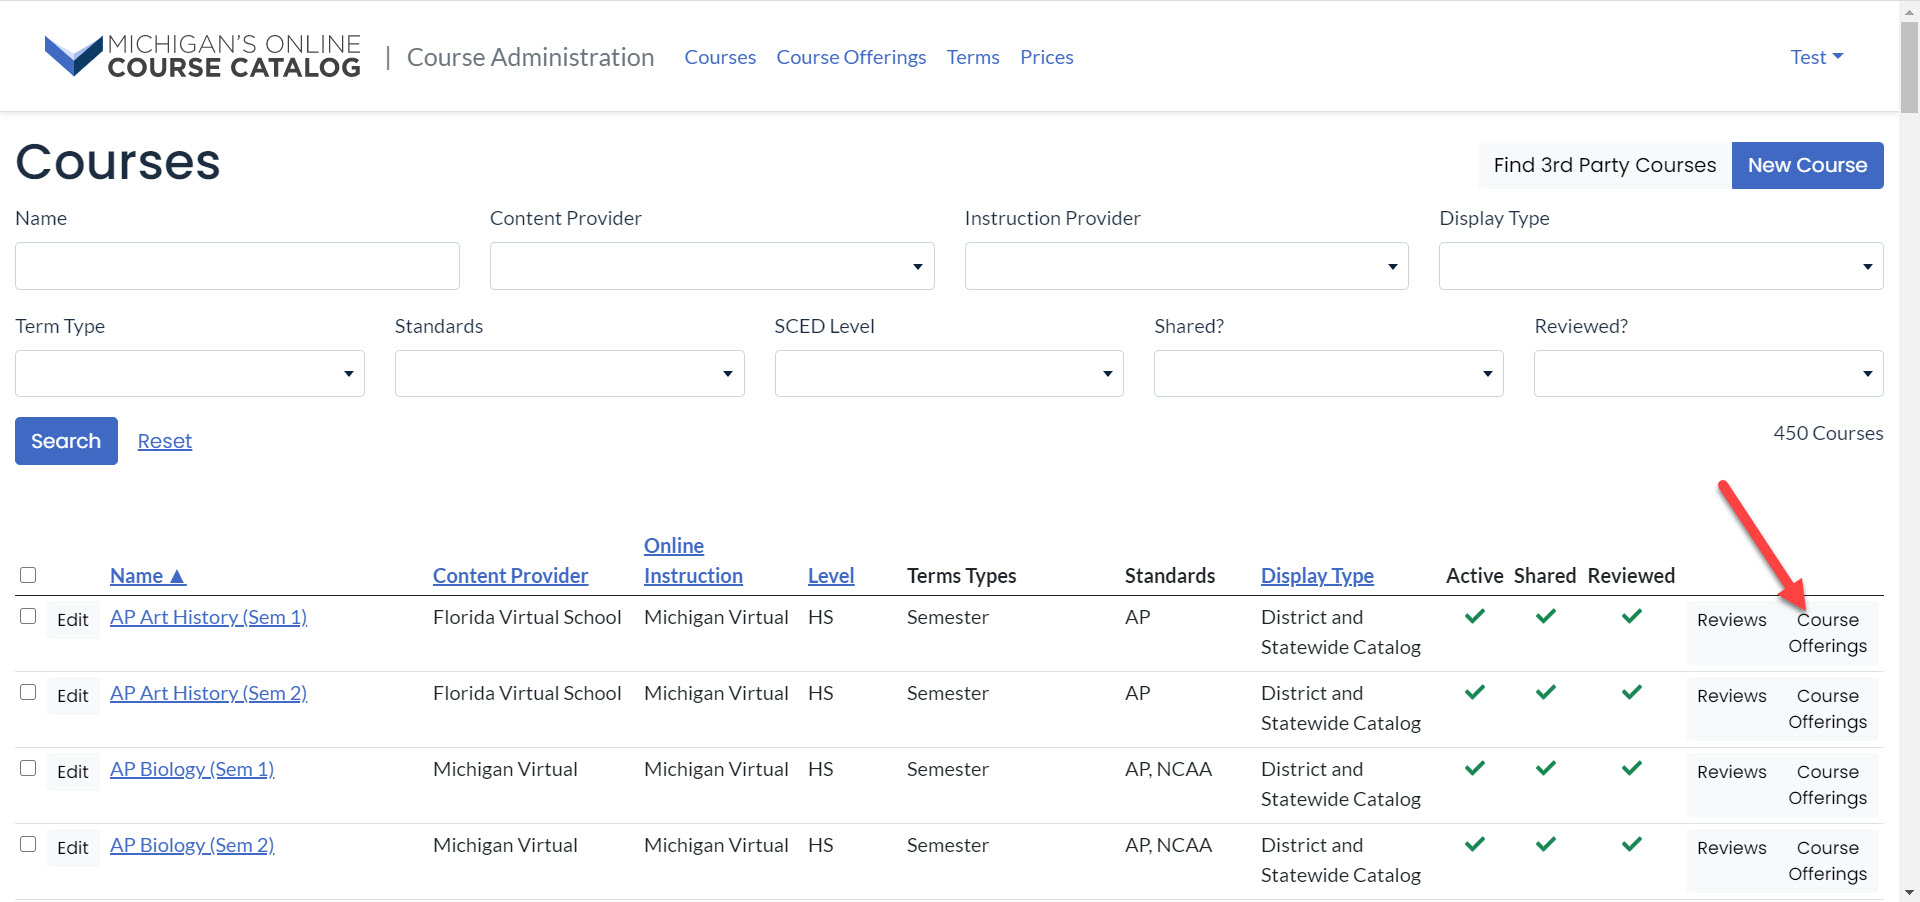 The courses page is shown with the results grid on bottom. An arrow points to the Course Offerings button in the top row for AP Art History.